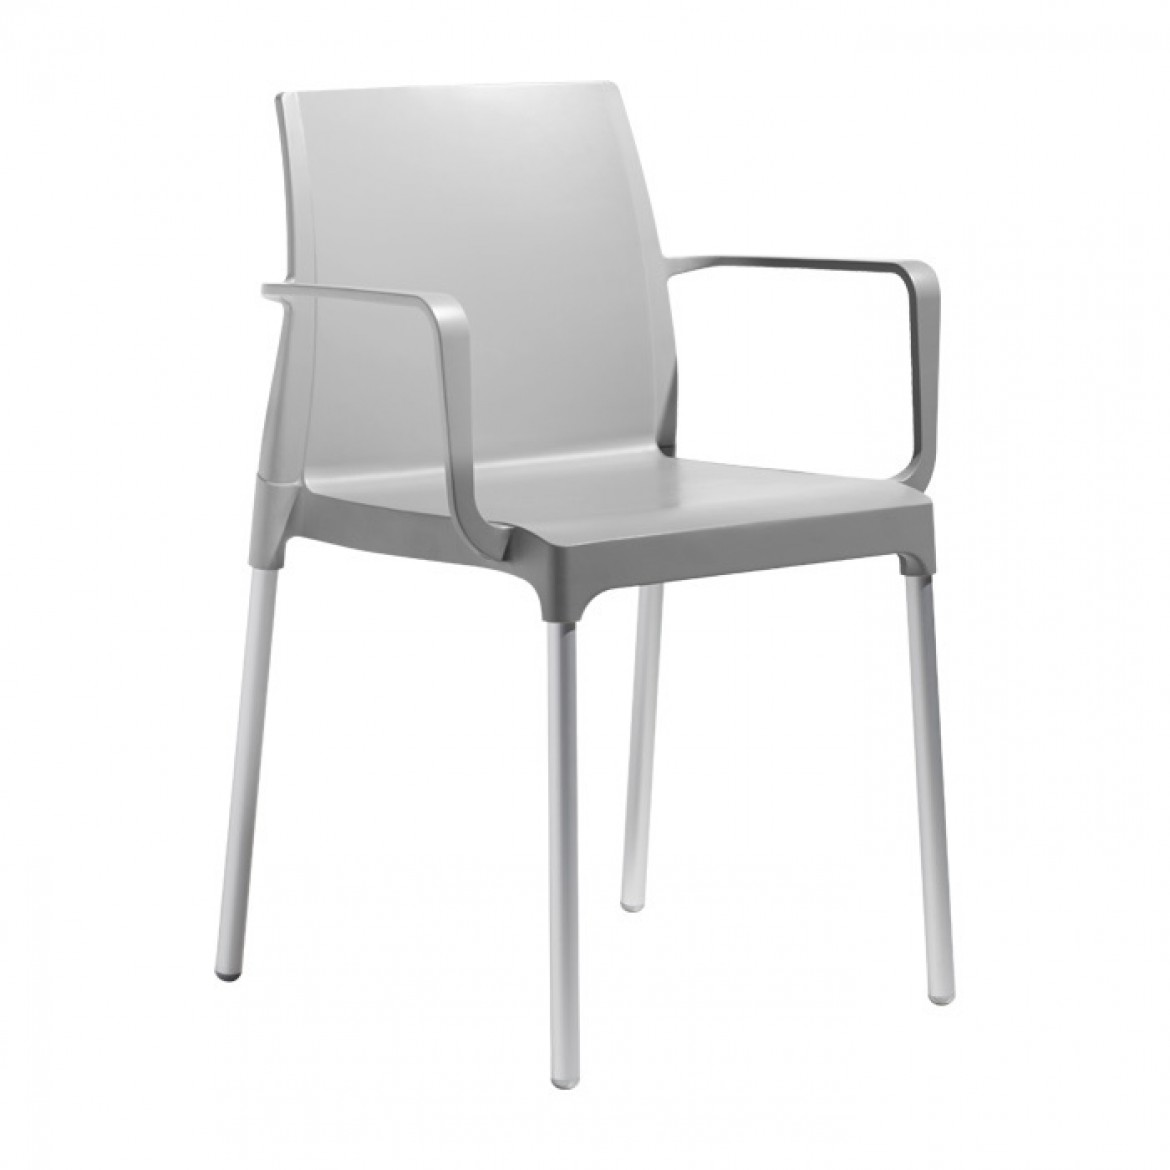 D 25 mm anodised aluminium legs. Stackable. Grey polypropylene linking advice is available upon request to compose tied-up chair rows. Fiberglass-reinforced recyclable technopolymer main body. Available in 4 different colours: linen, dove grey,  anthracite grey and light grey.